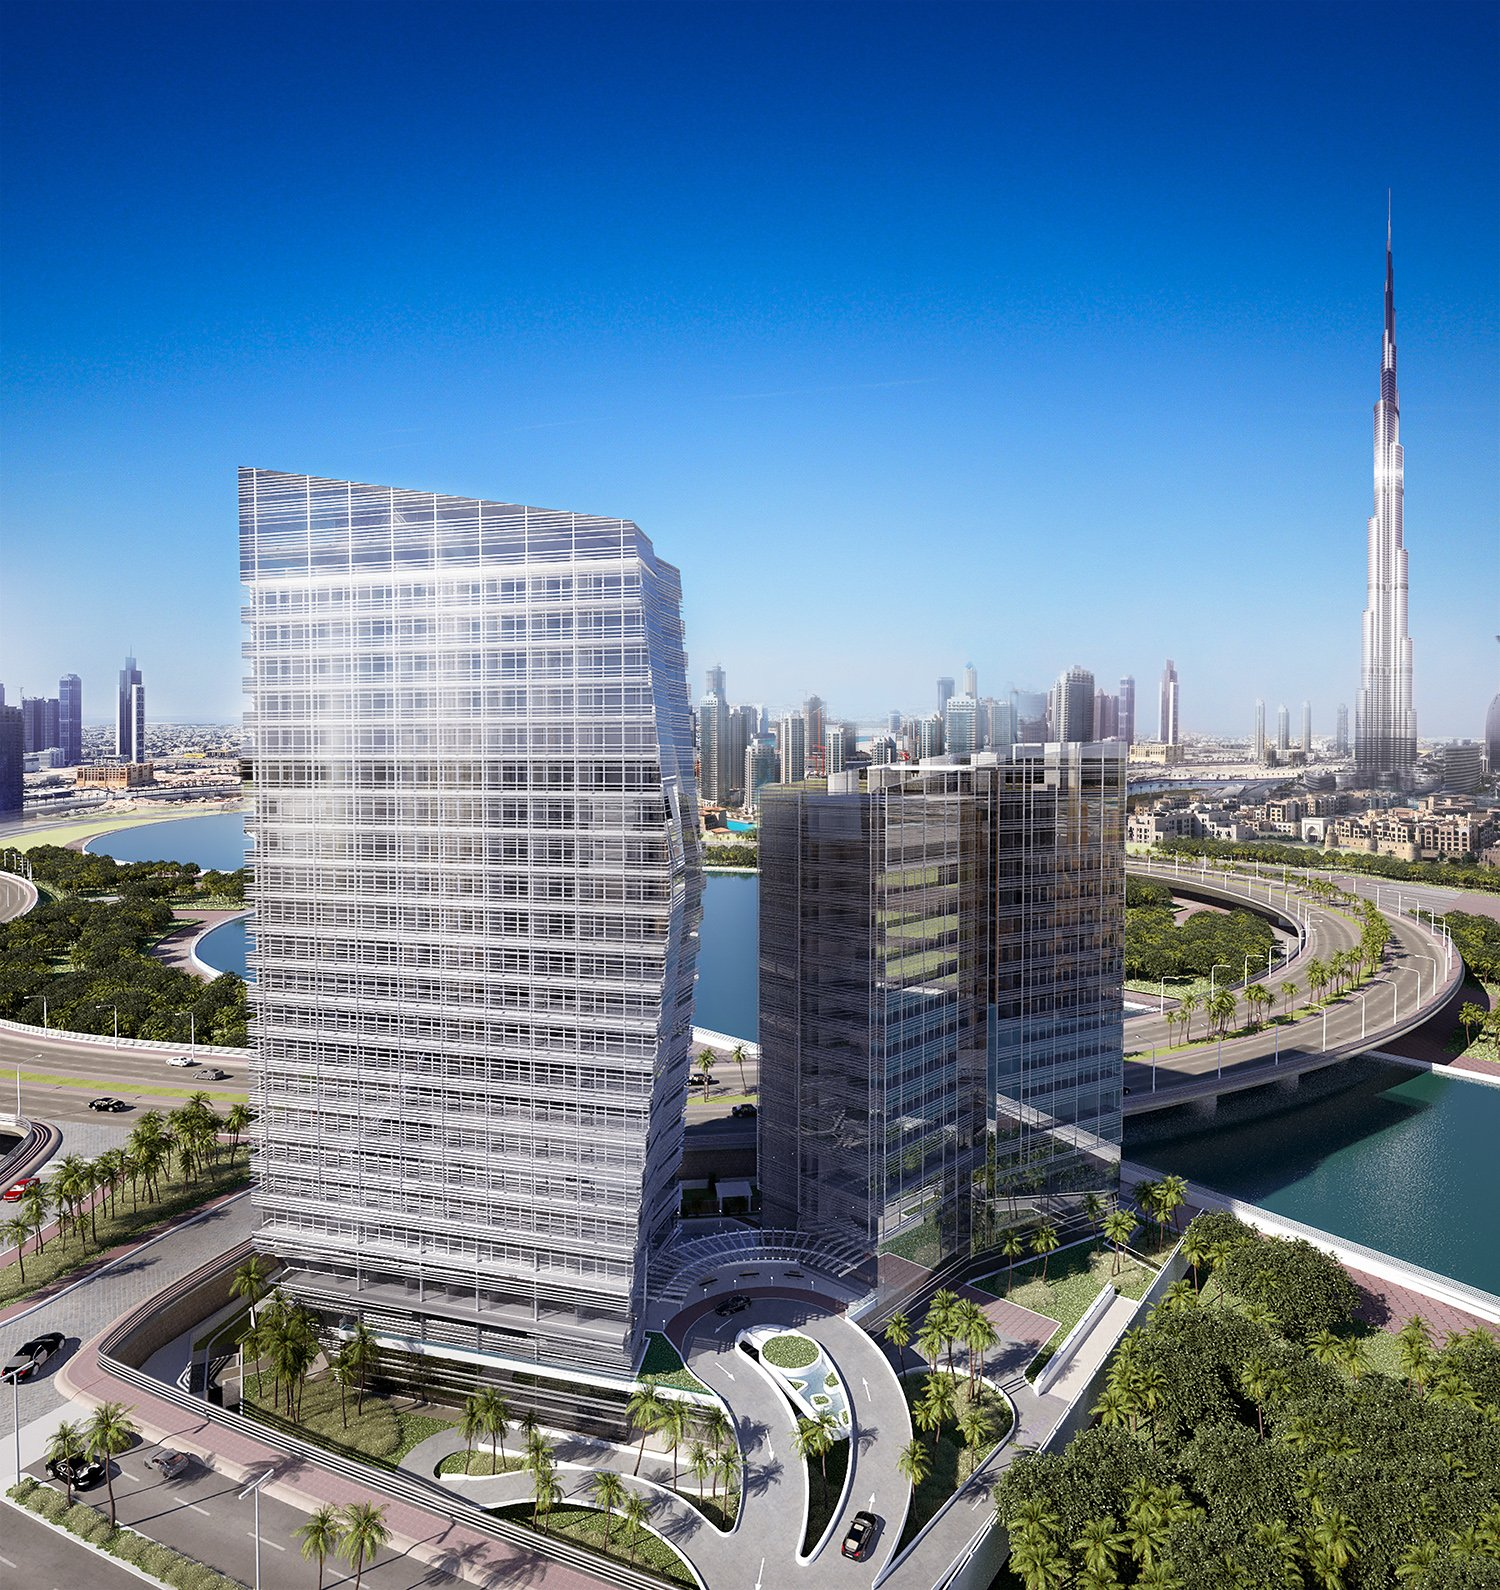 Exclusive Hotel In Dubai: Langham Hospitality Group Introduces New Luxury Hotel In Dubai